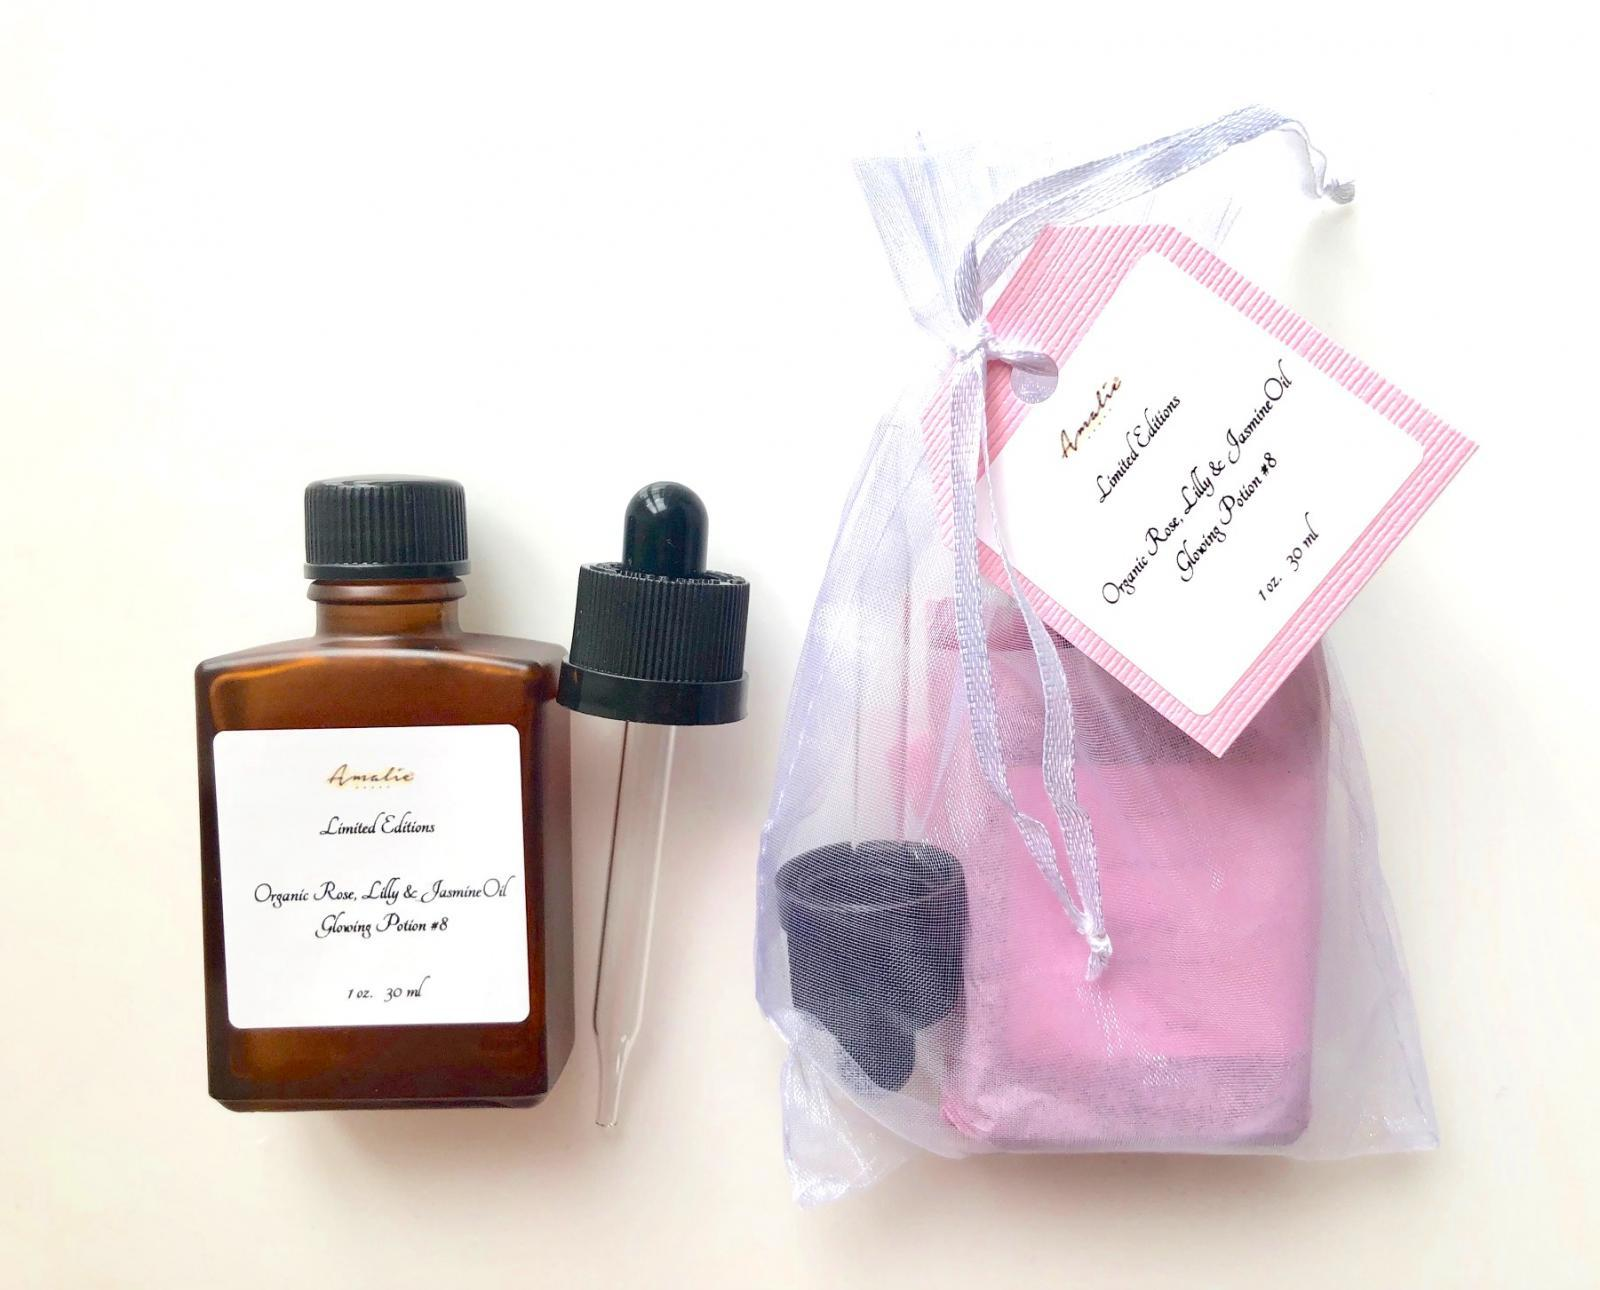 Organic Rose, Lilly & Jasmine Glowing Potion #8